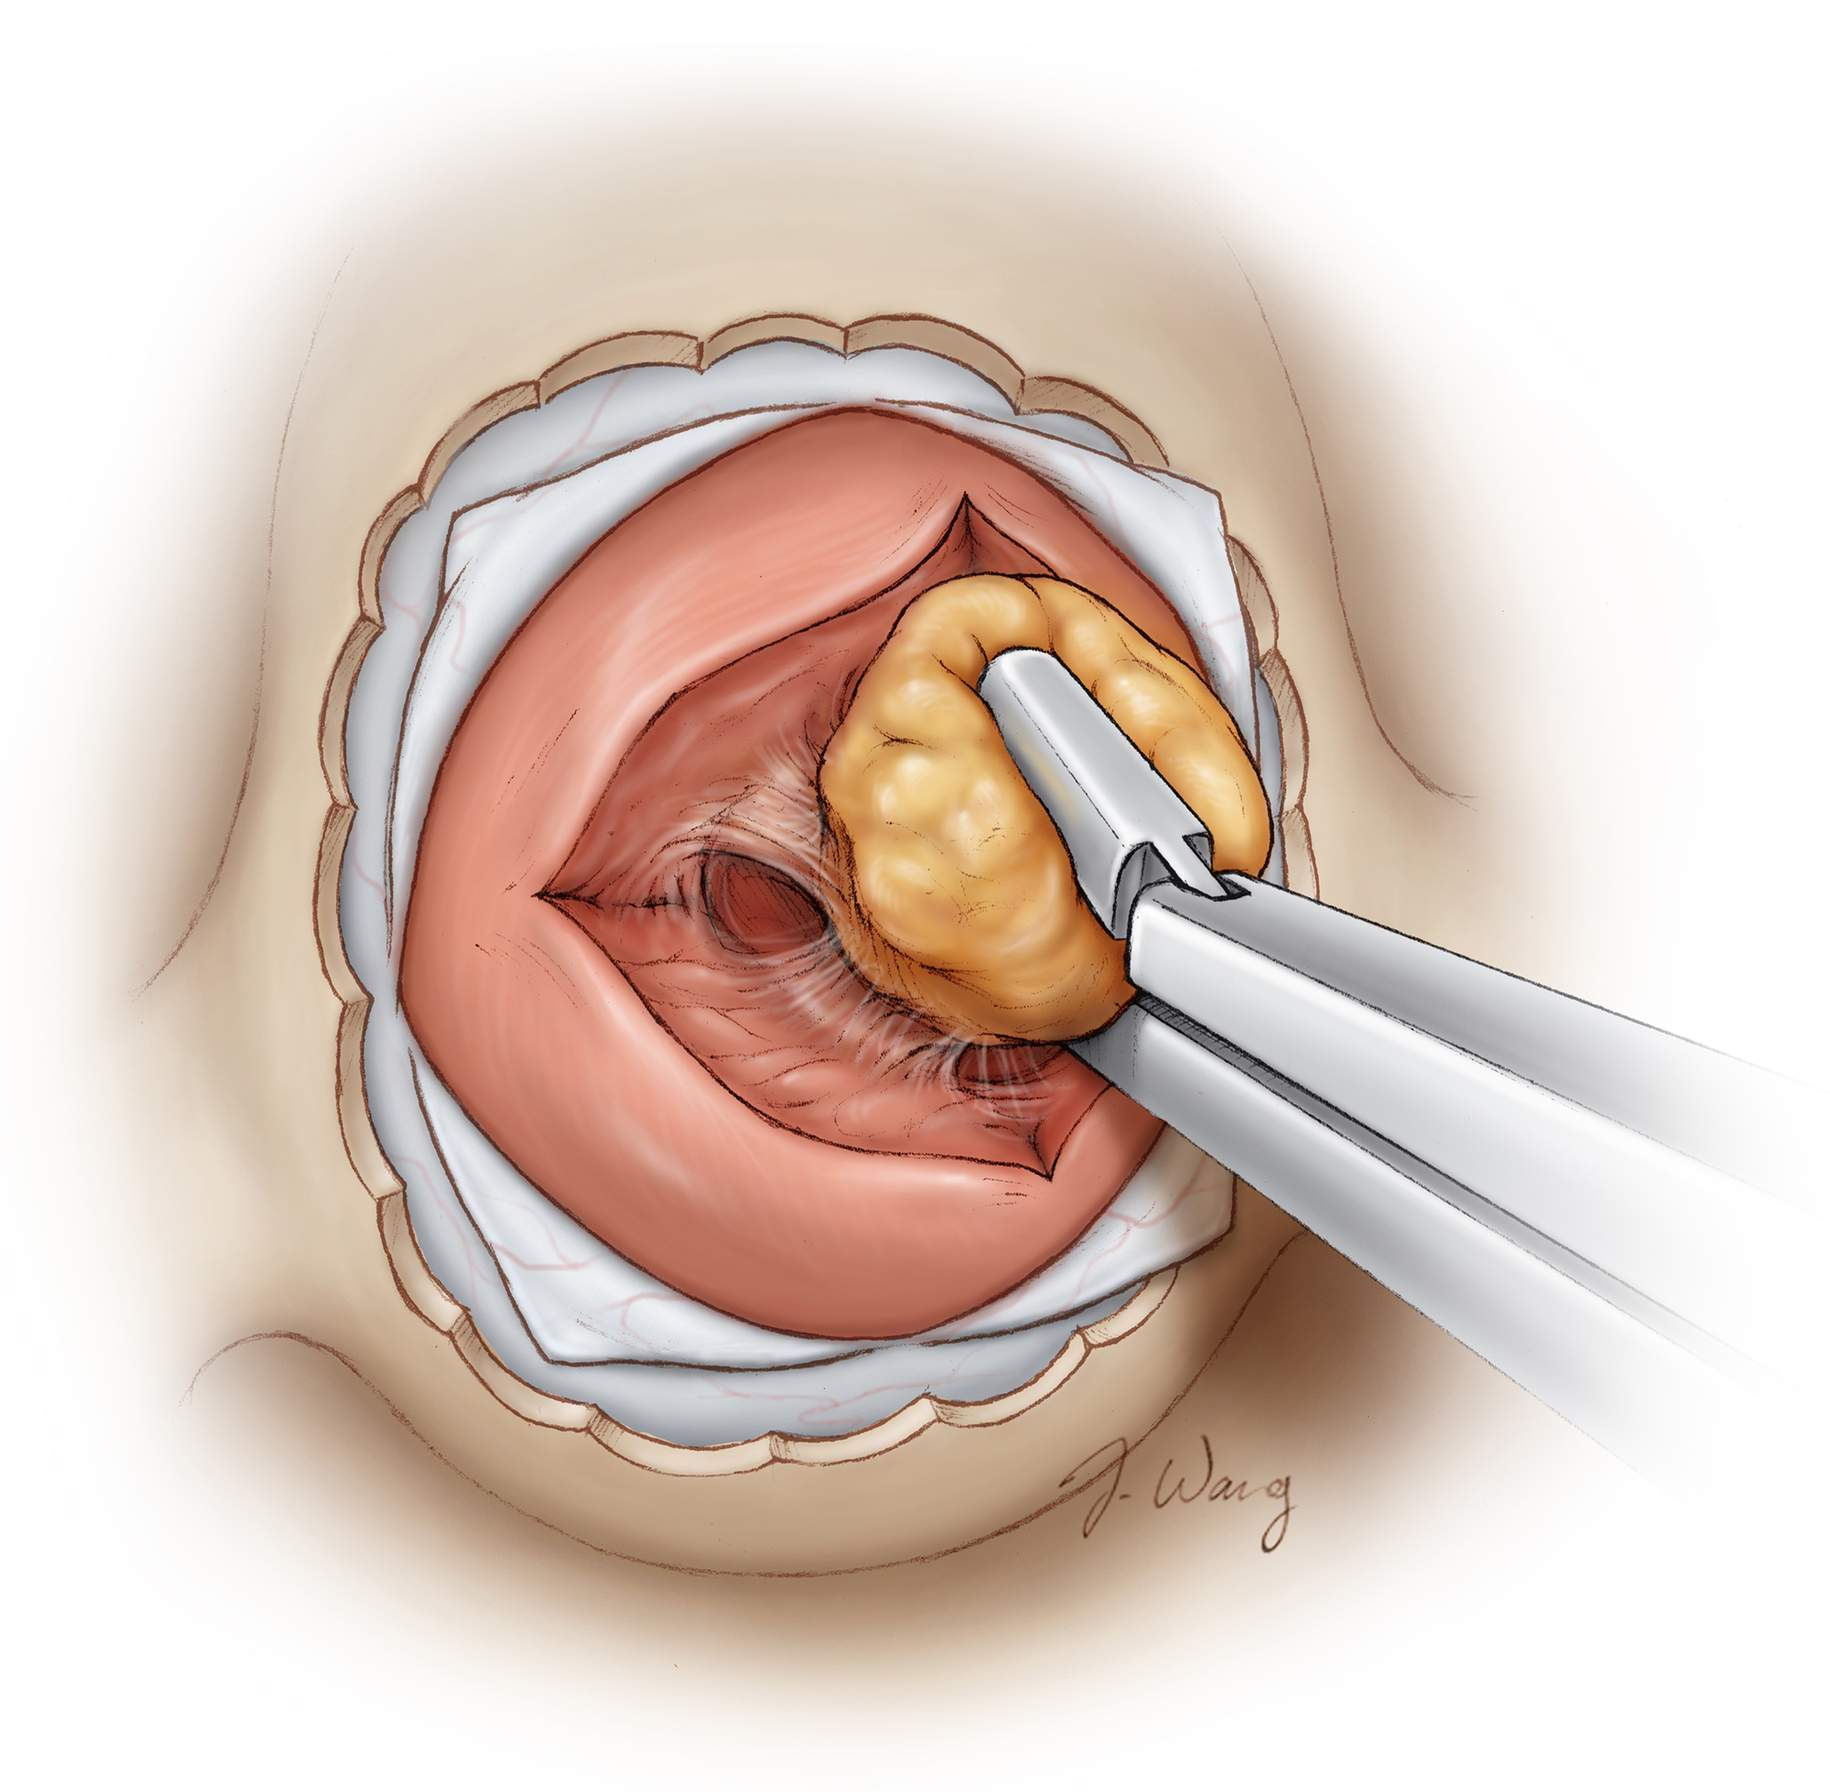 Figure 5: Following circumferential dissection of the microadenoma, the mass can then be removed. The capsule of the nodule is preserved and the nodule is removed  en bloc . The resection cavity is carefully inspected (Redrawn from Tew, van Loveren, Keller*).